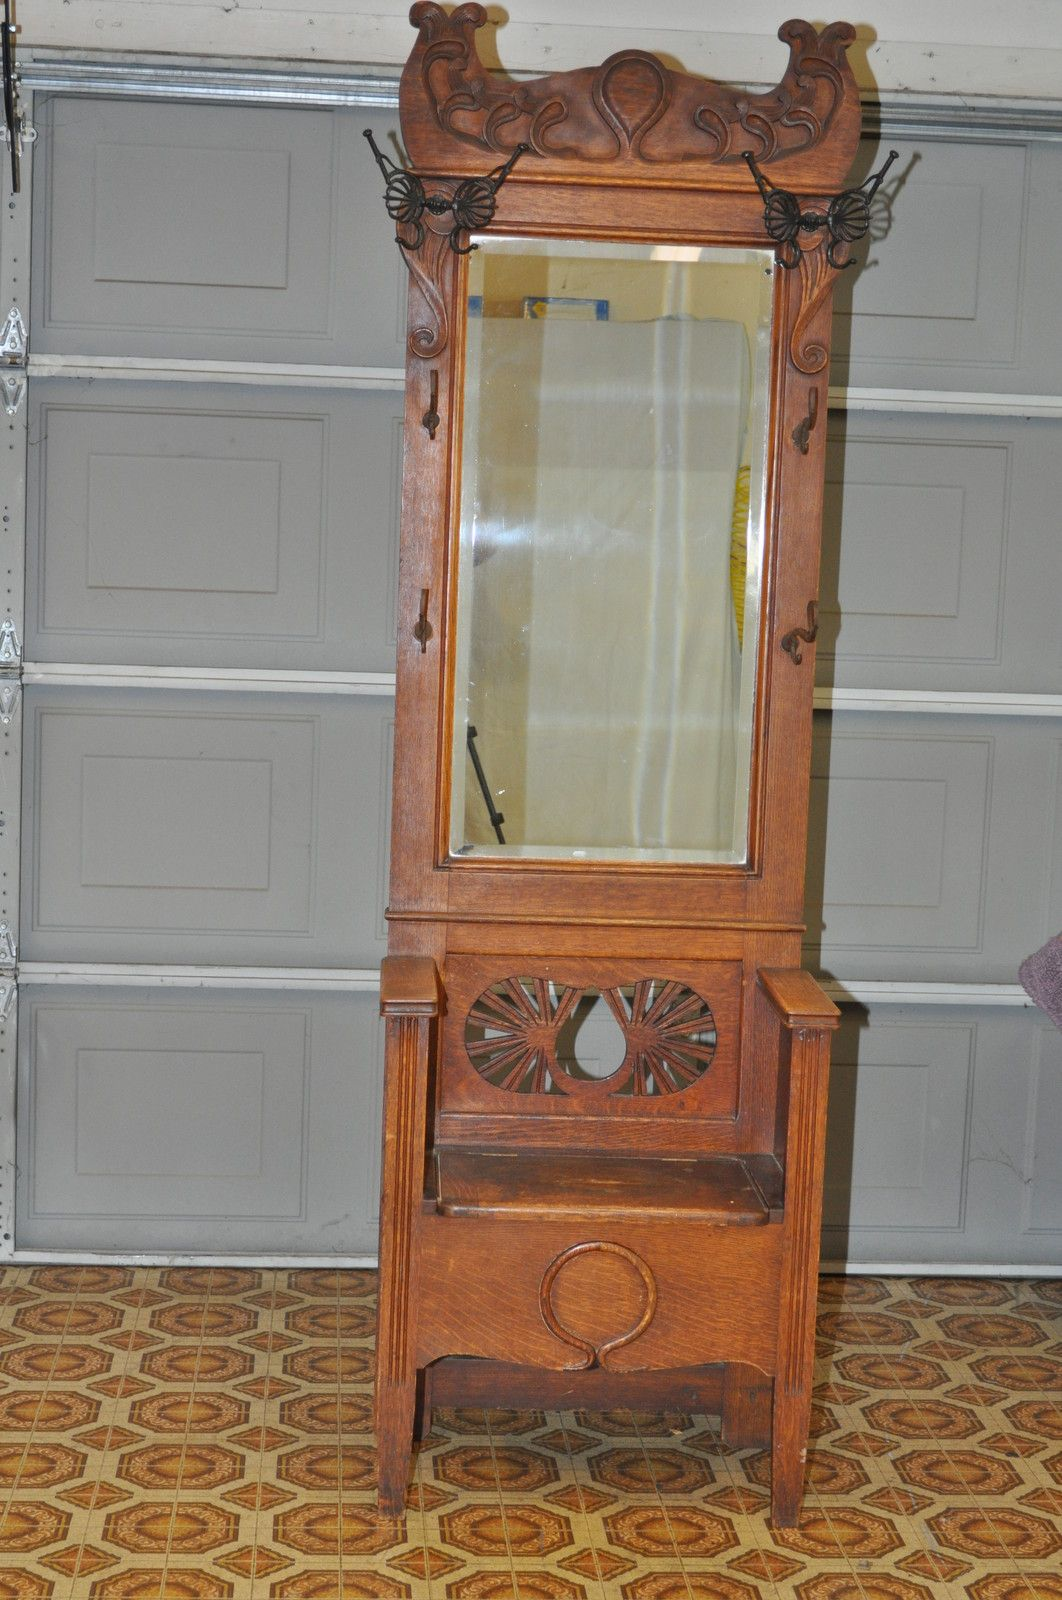 Admirable Antique Oak Entry Hall Tree With Storage Bench Beveled Andrewgaddart Wooden Chair Designs For Living Room Andrewgaddartcom